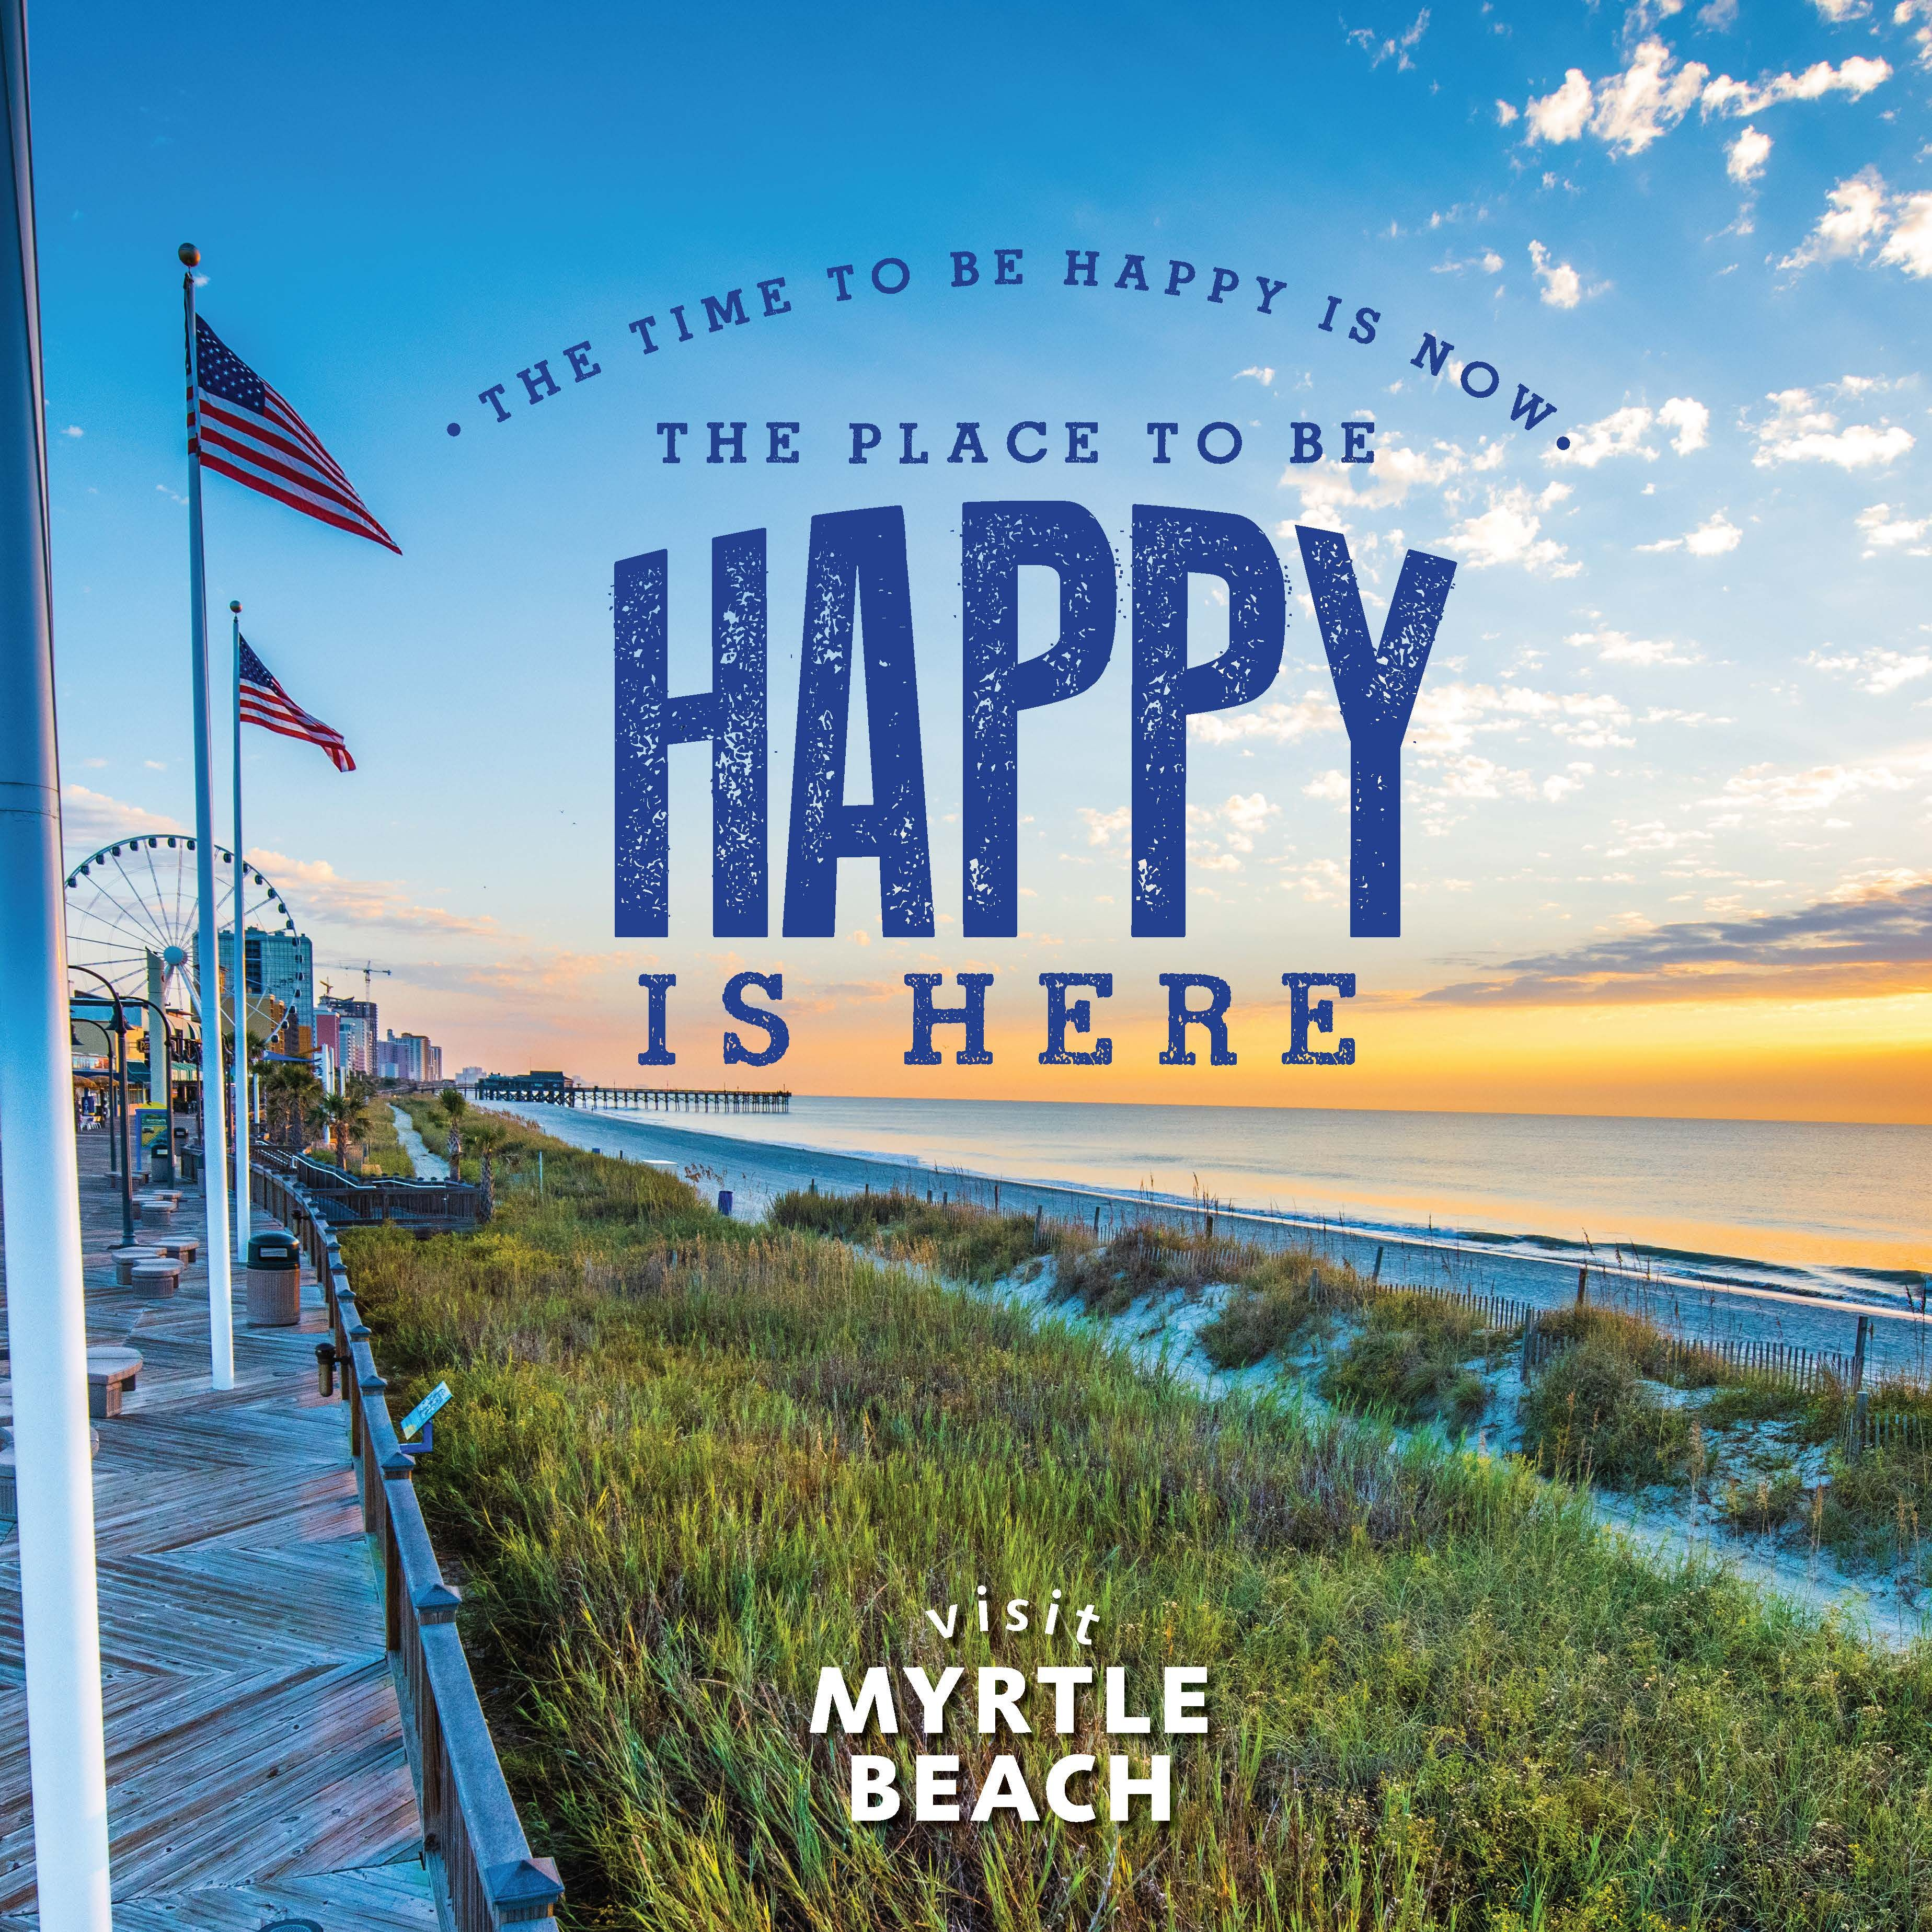 Visit Myrtle Beach South Carolina Sc Words